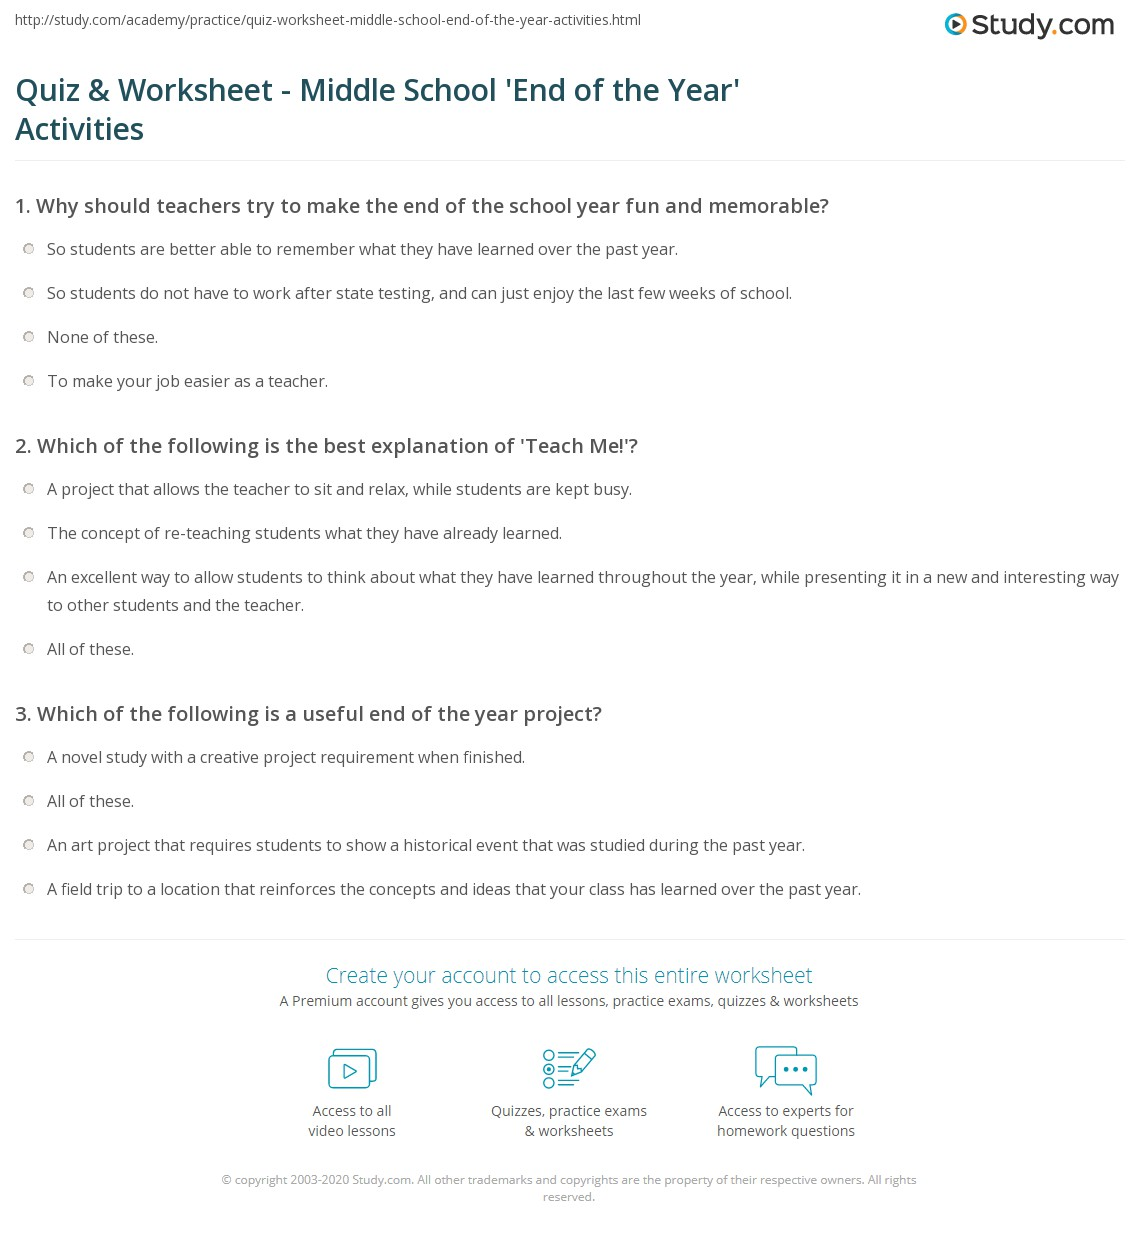 worksheet All About Me Middle School Worksheet quiz worksheet middle school end of the year activities print for worksheet